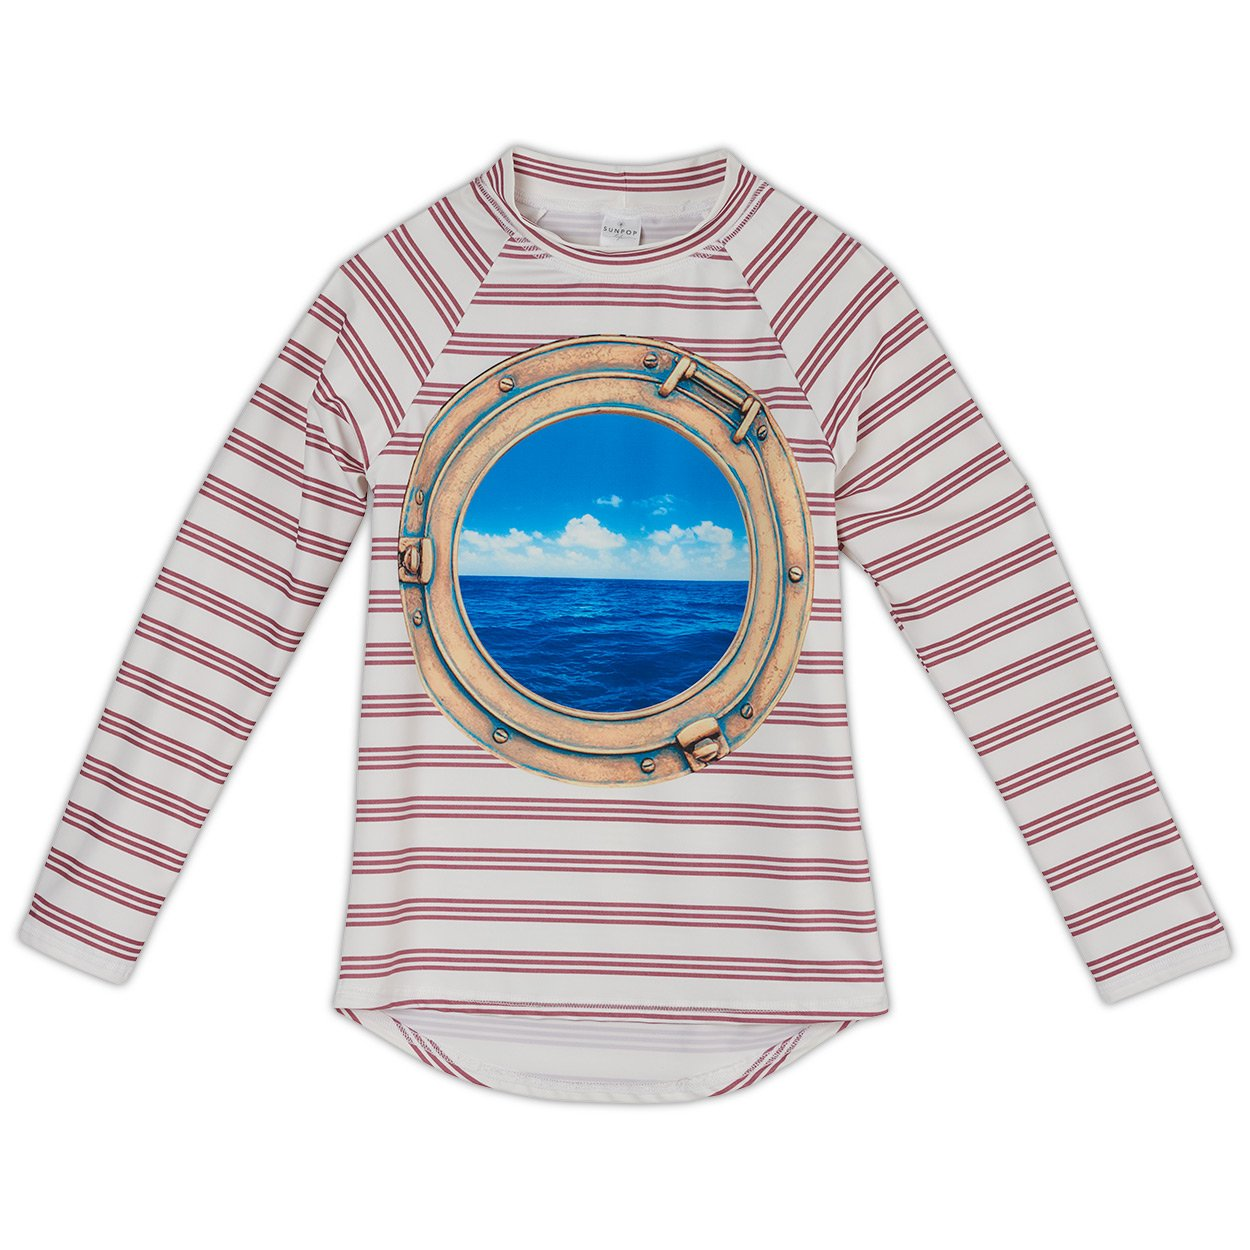 Modern Striped Long Sleeve Rash Guard Top UPF 50+